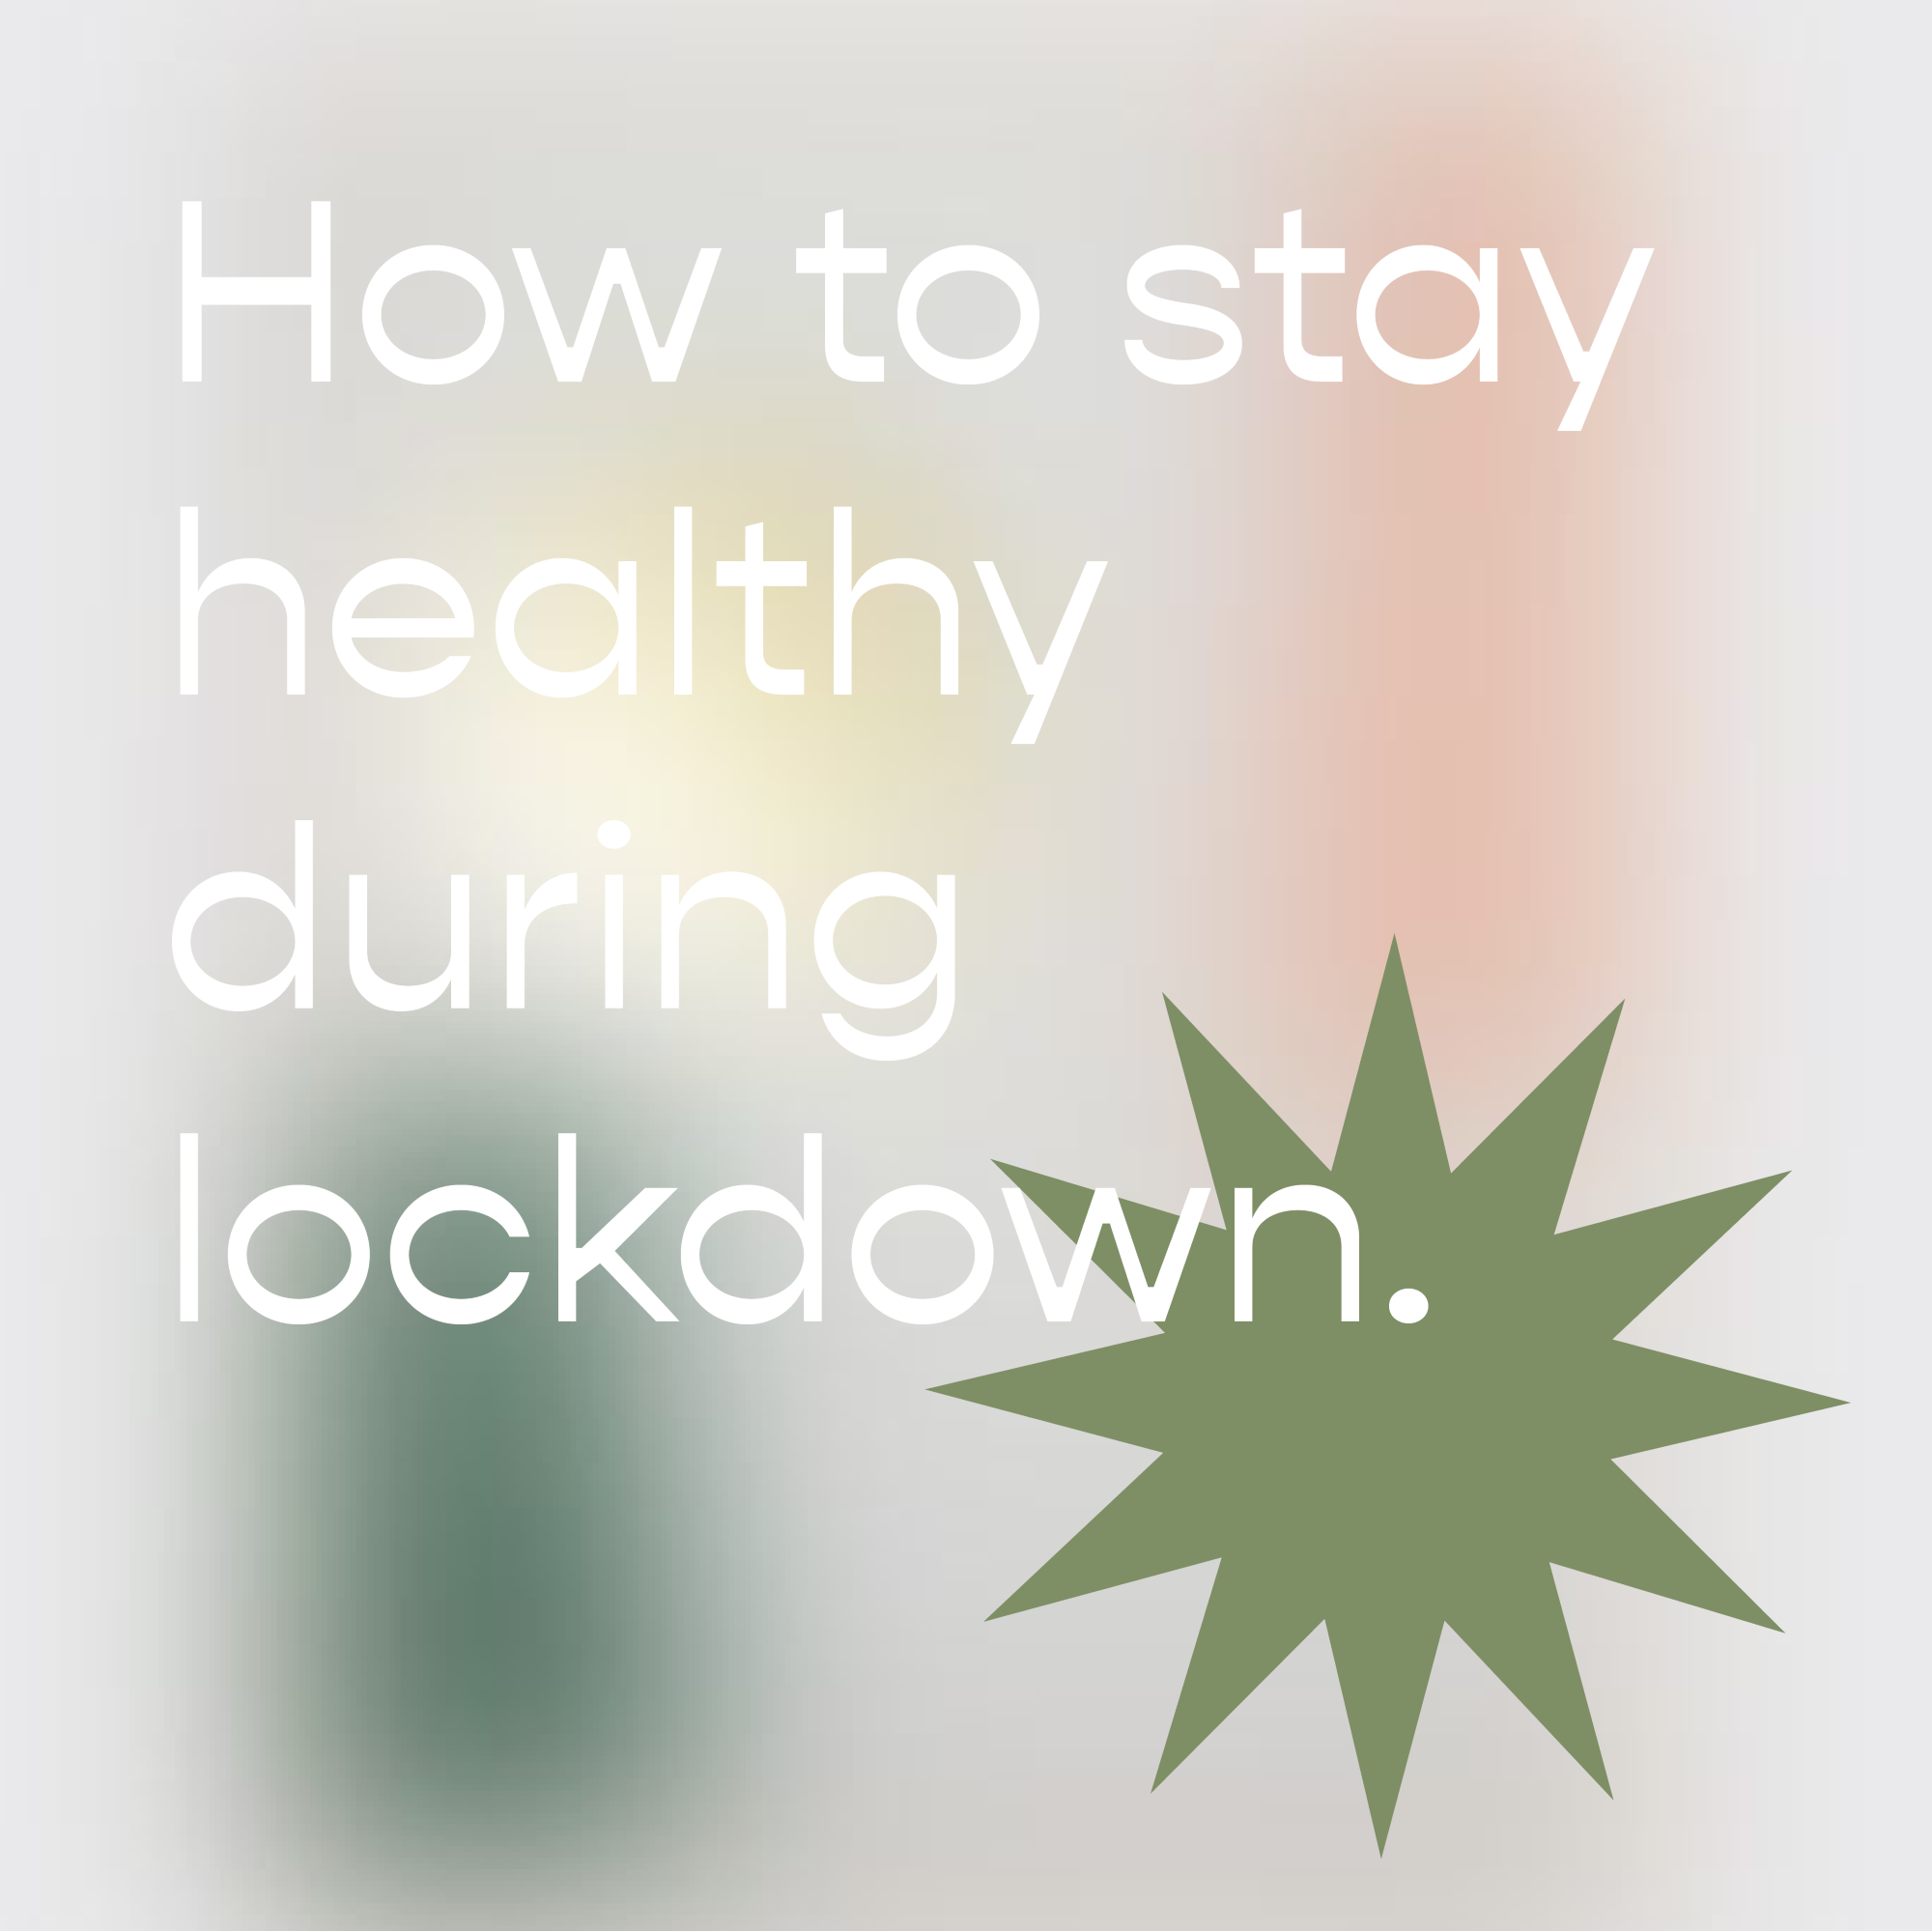 How to stay healthy during lockdown.